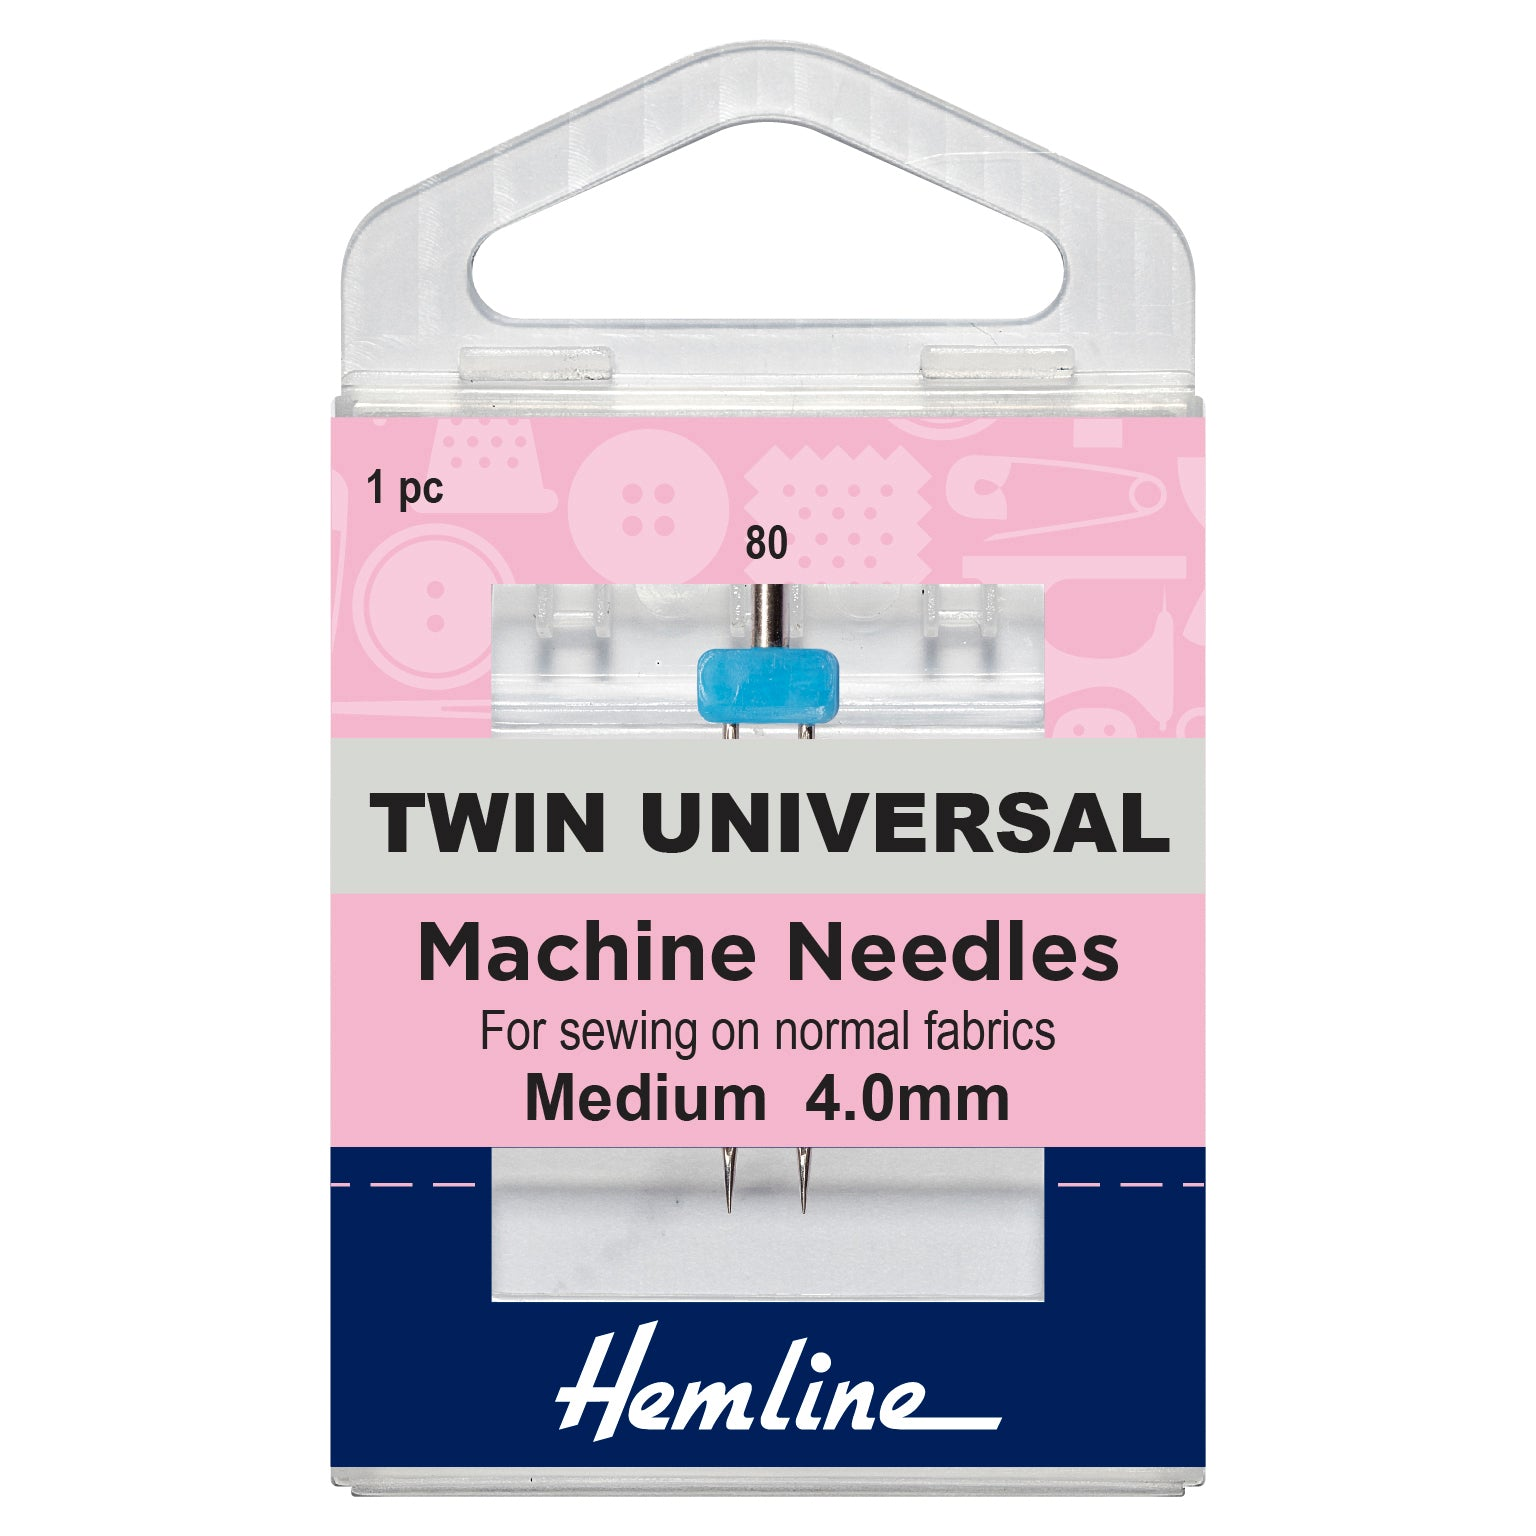 Twin Universal Machine Needle: 80/12, 4mm-Hemline-Loubodu Fabrics (2632083505237)